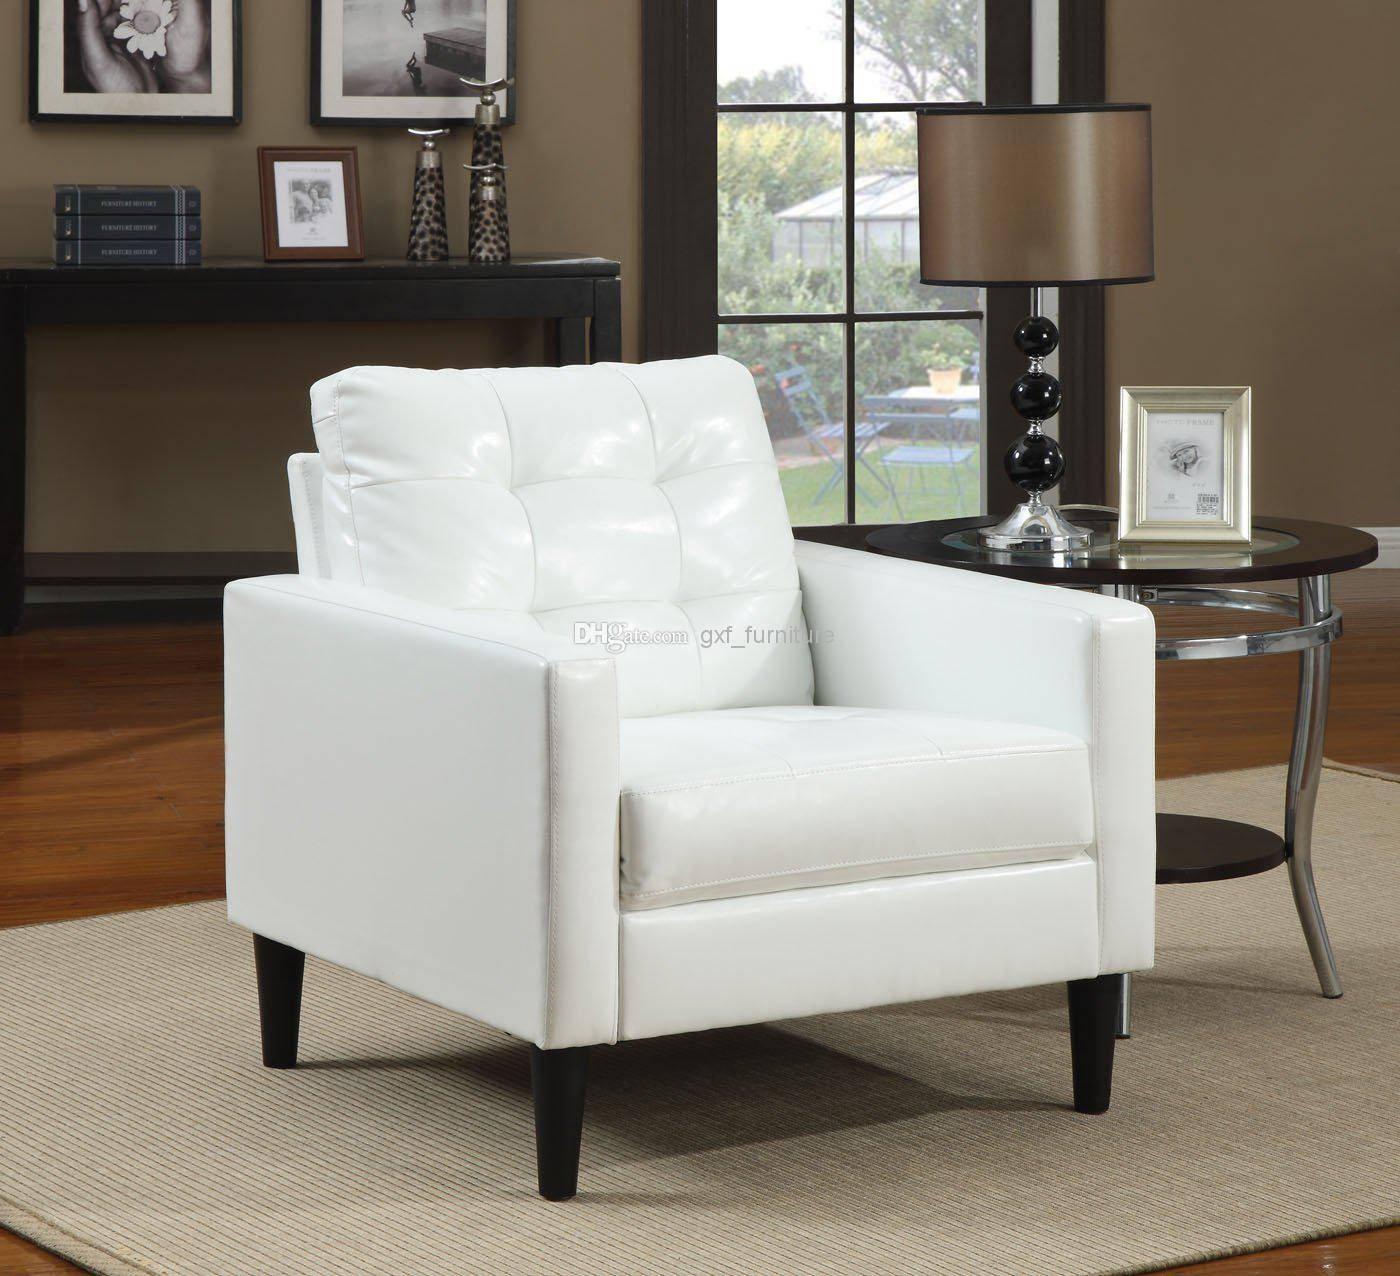 2017 Sofa Chair,armchairs ,leisure Furniture, Soft Chair,leather For Sofa Chairs For Living Room (View 1 of 15)